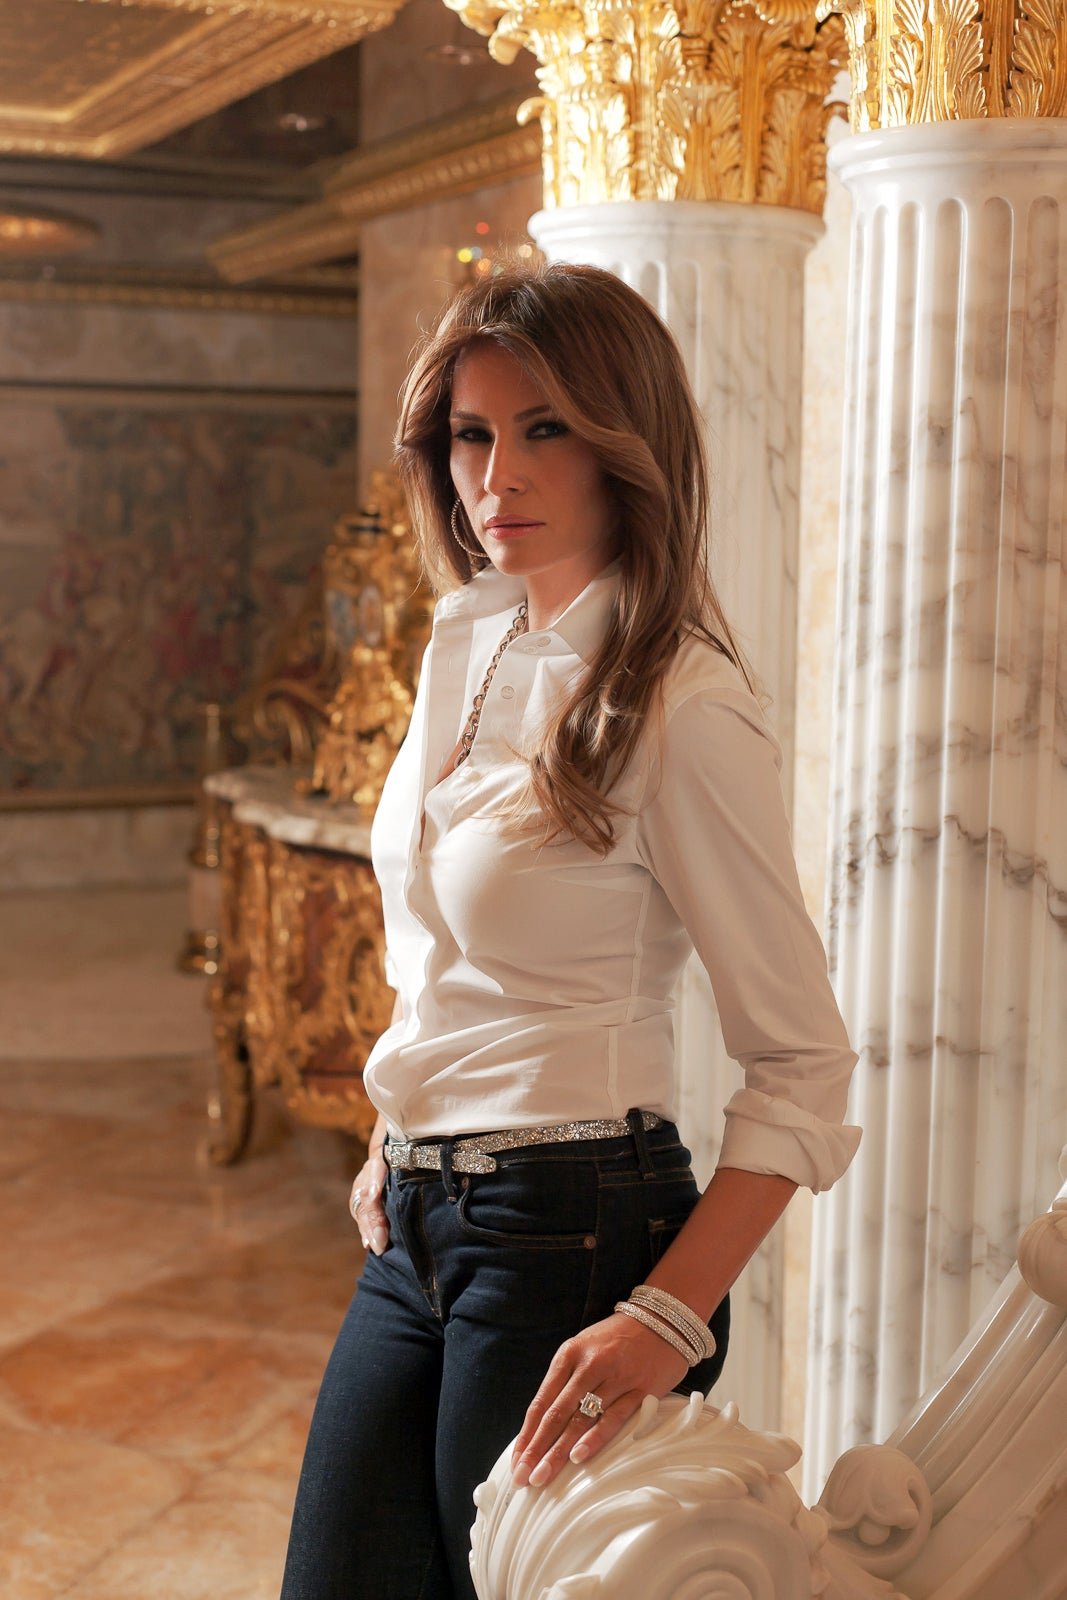 Exclusive Melania Trump Interview And Pictures Donald Trump Penthouse Tour And Interview